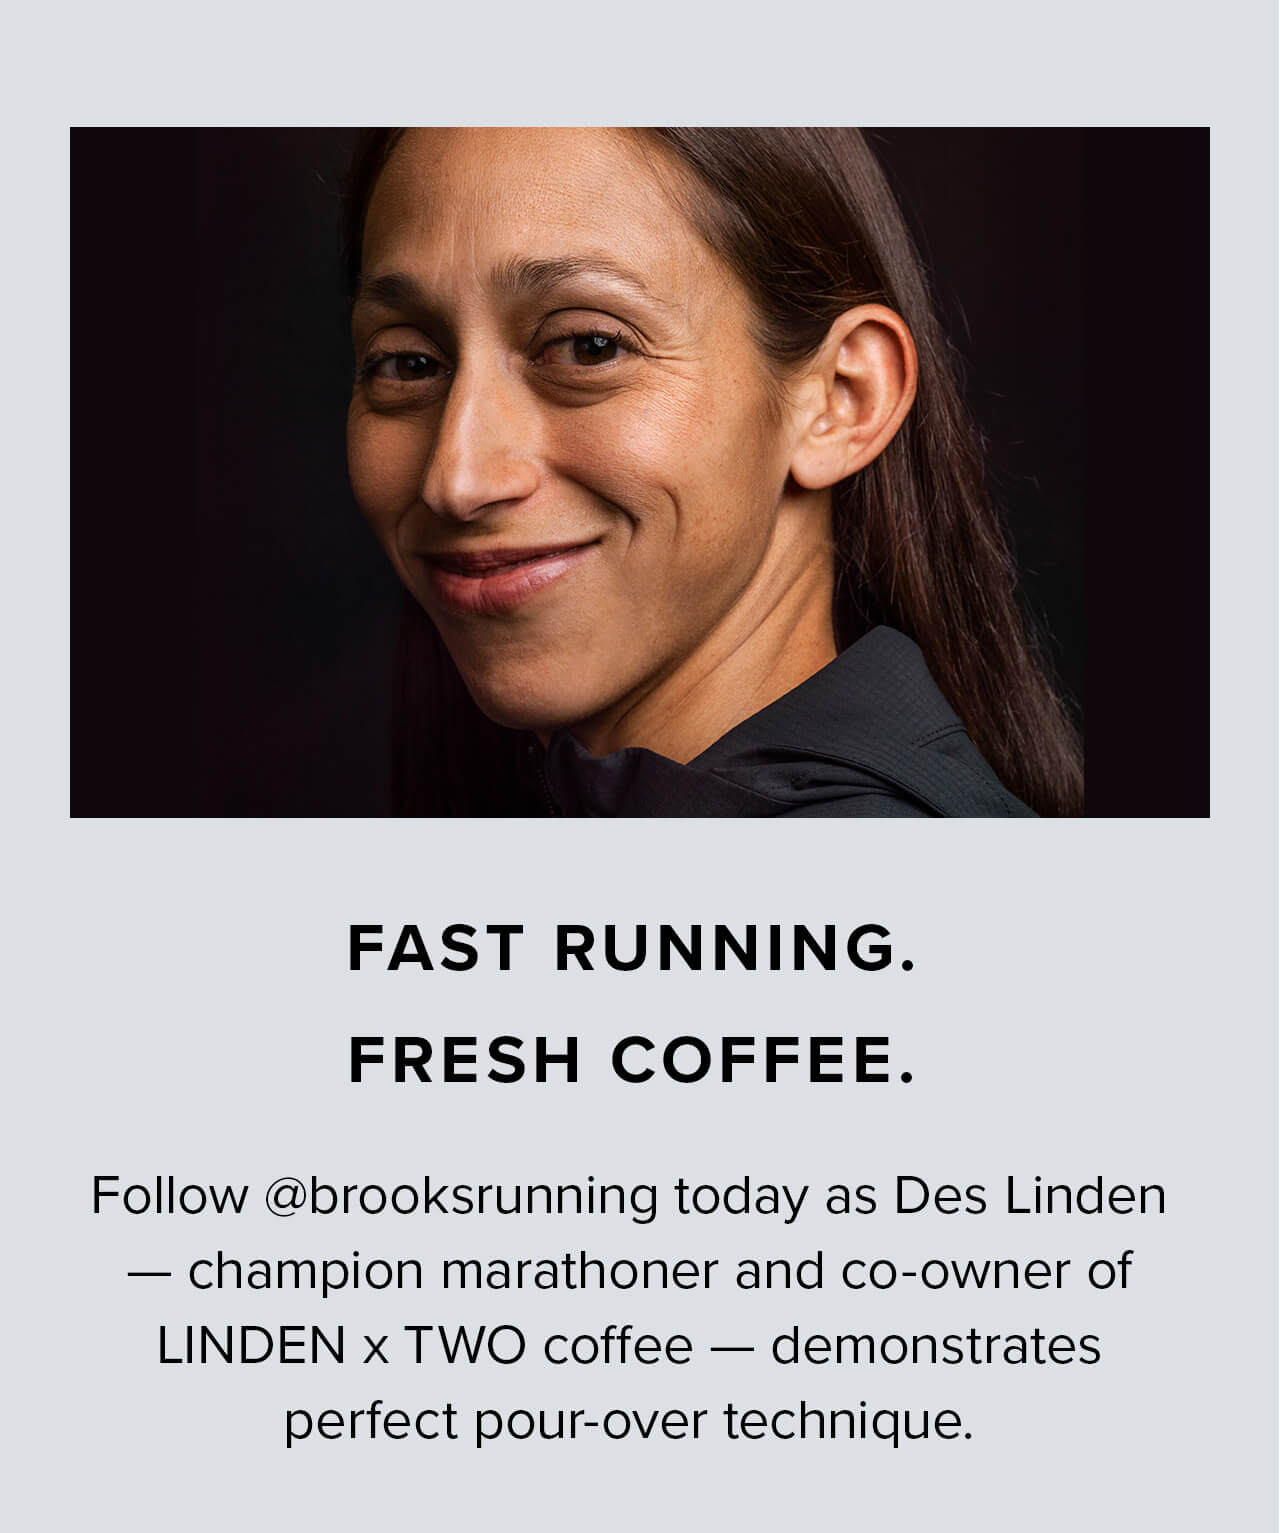 FAST RUNNING. FRESH COFFEE. Follow @brooksrunning today as Des Linden - champion marathoner and co-owner of LINDER x TWO coffee - demonstrates perfect pour-over technique.